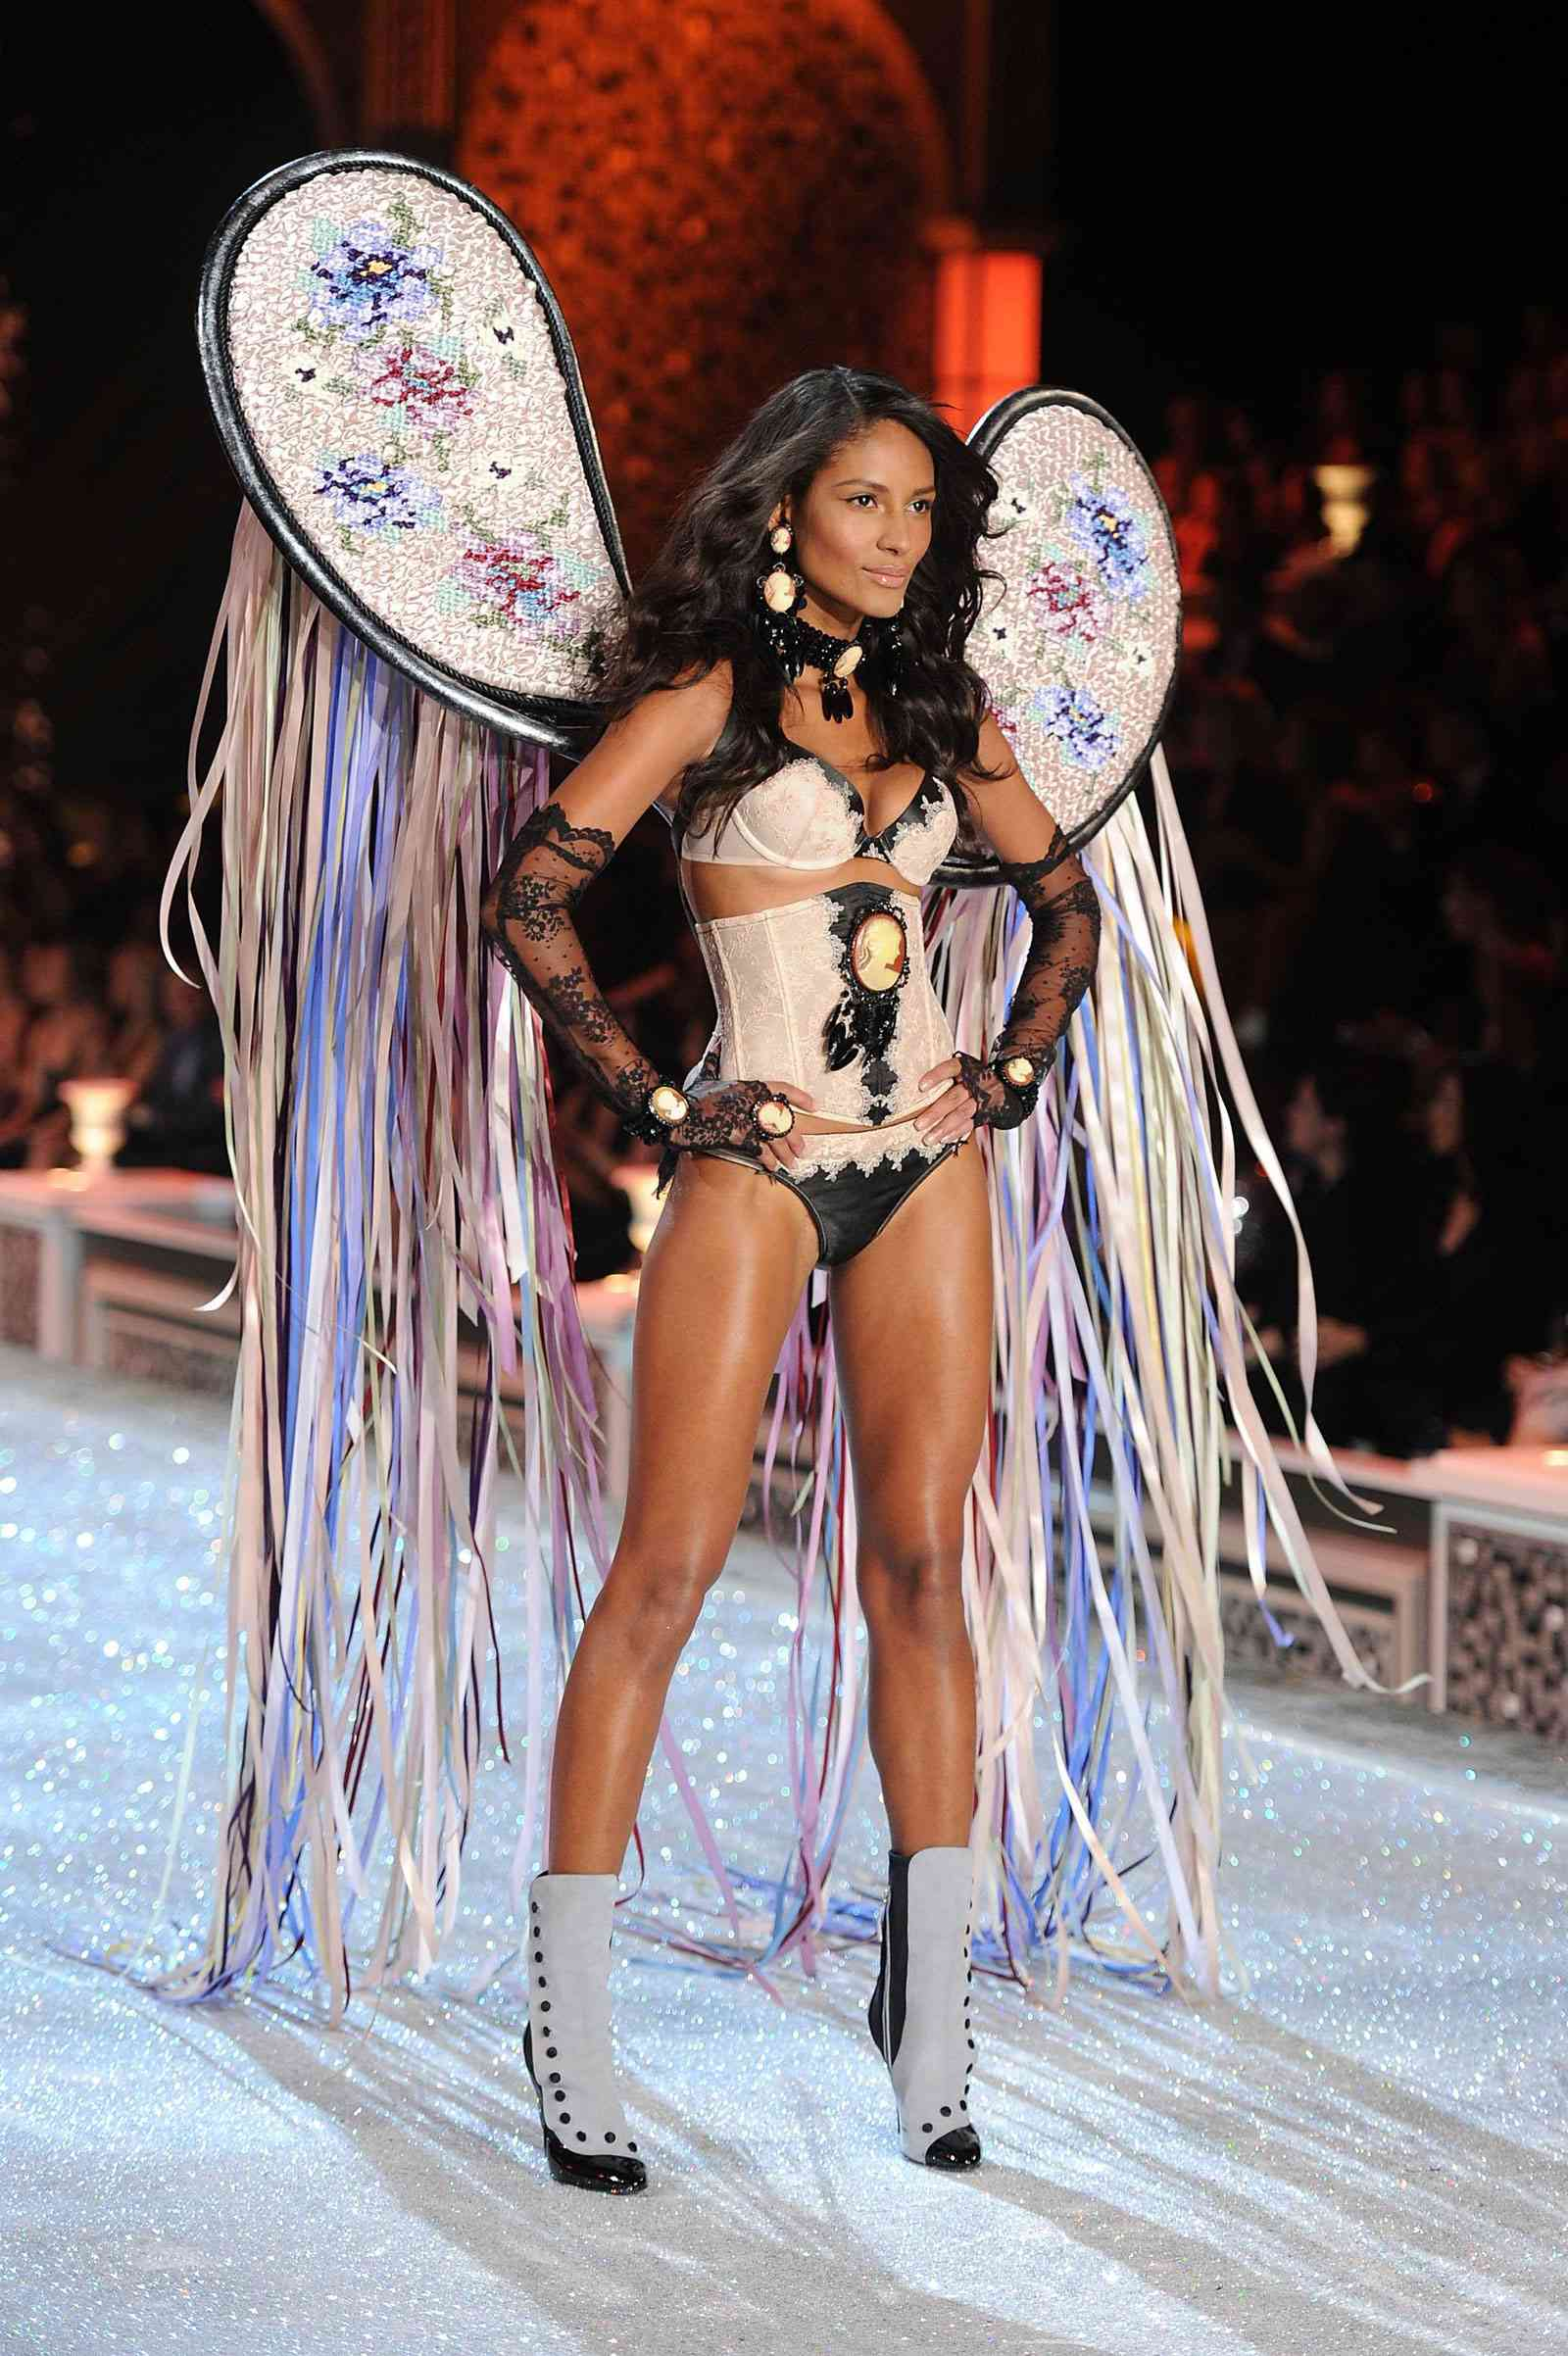 Emanuela De Paula at Victoria's Secret Fashion Show in New York